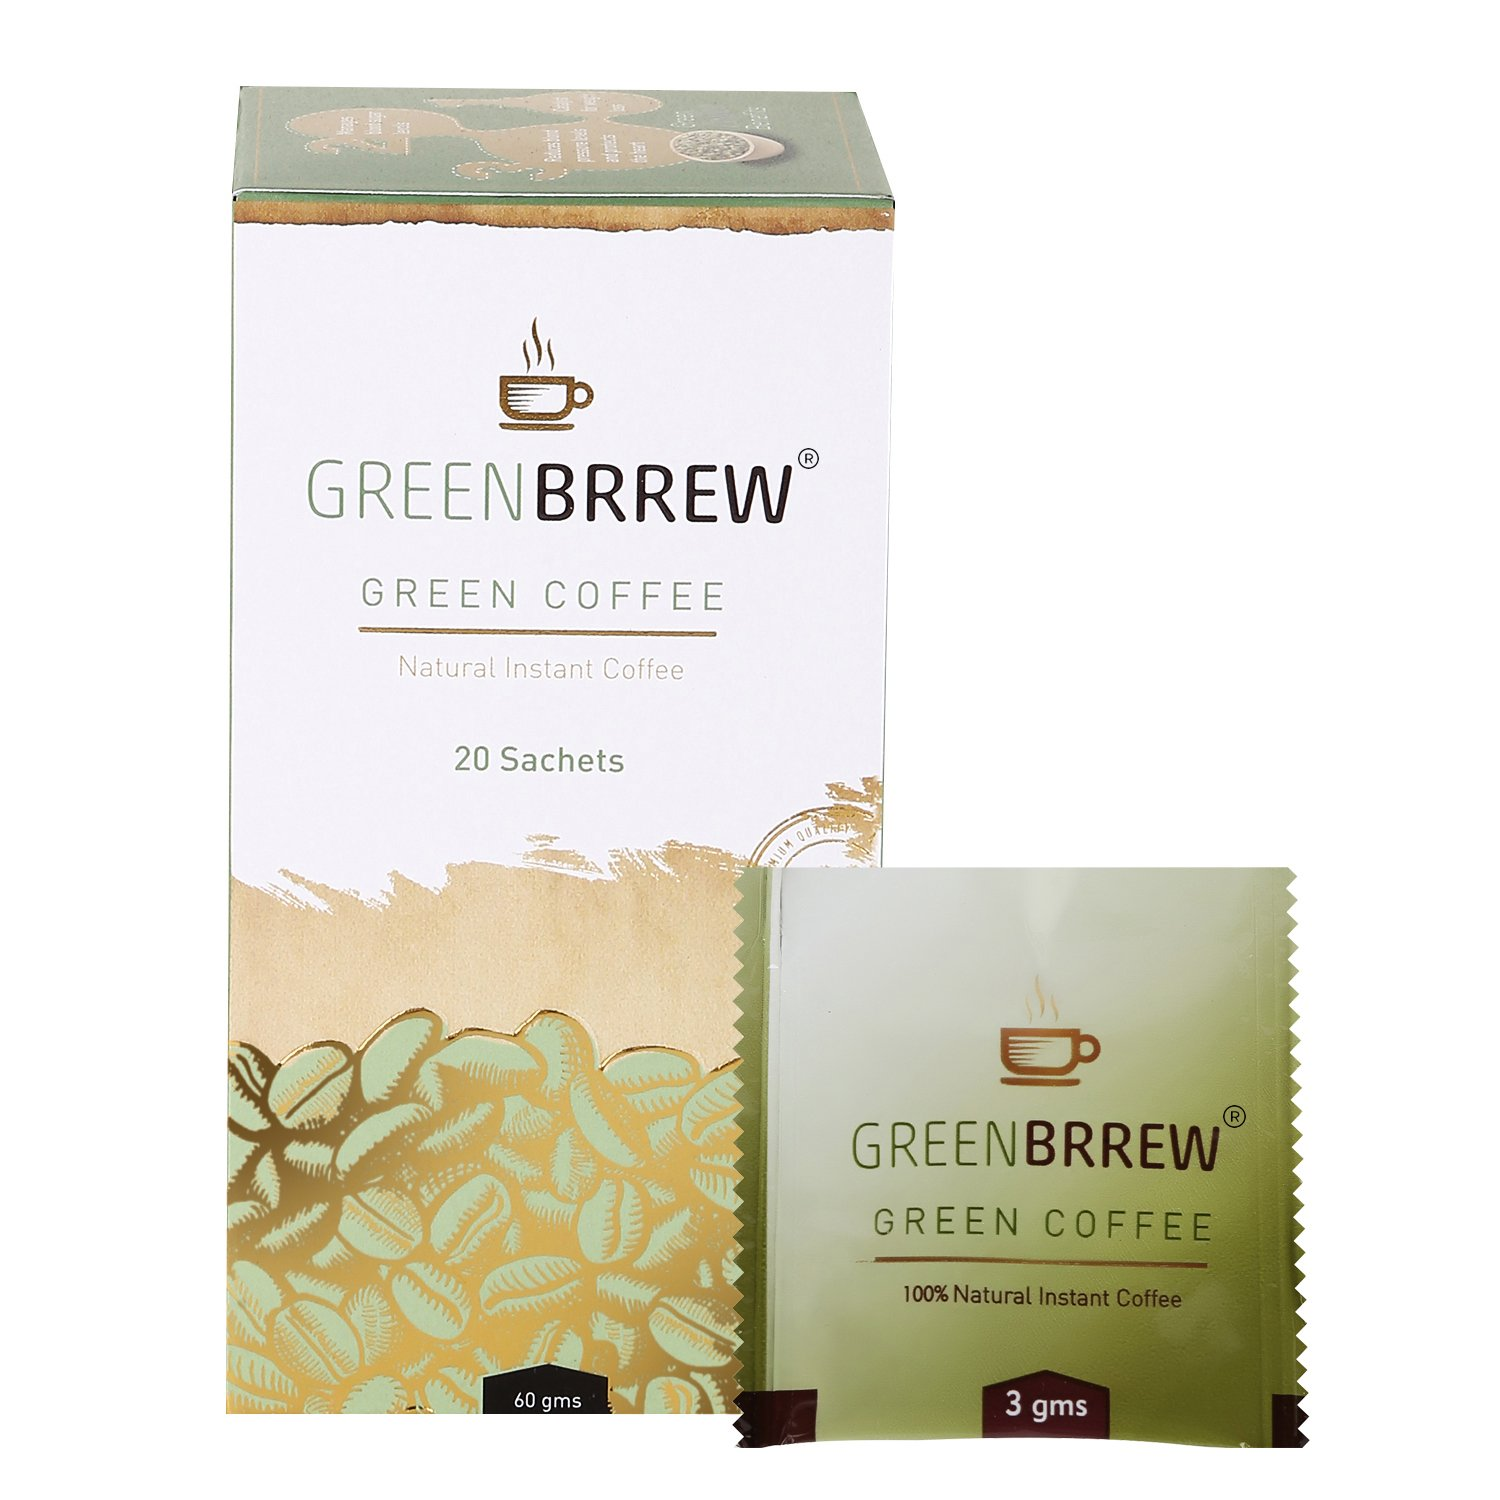 Greenbrrew Natural Instant Green Coffee For Weight Loss - 20 Sachets